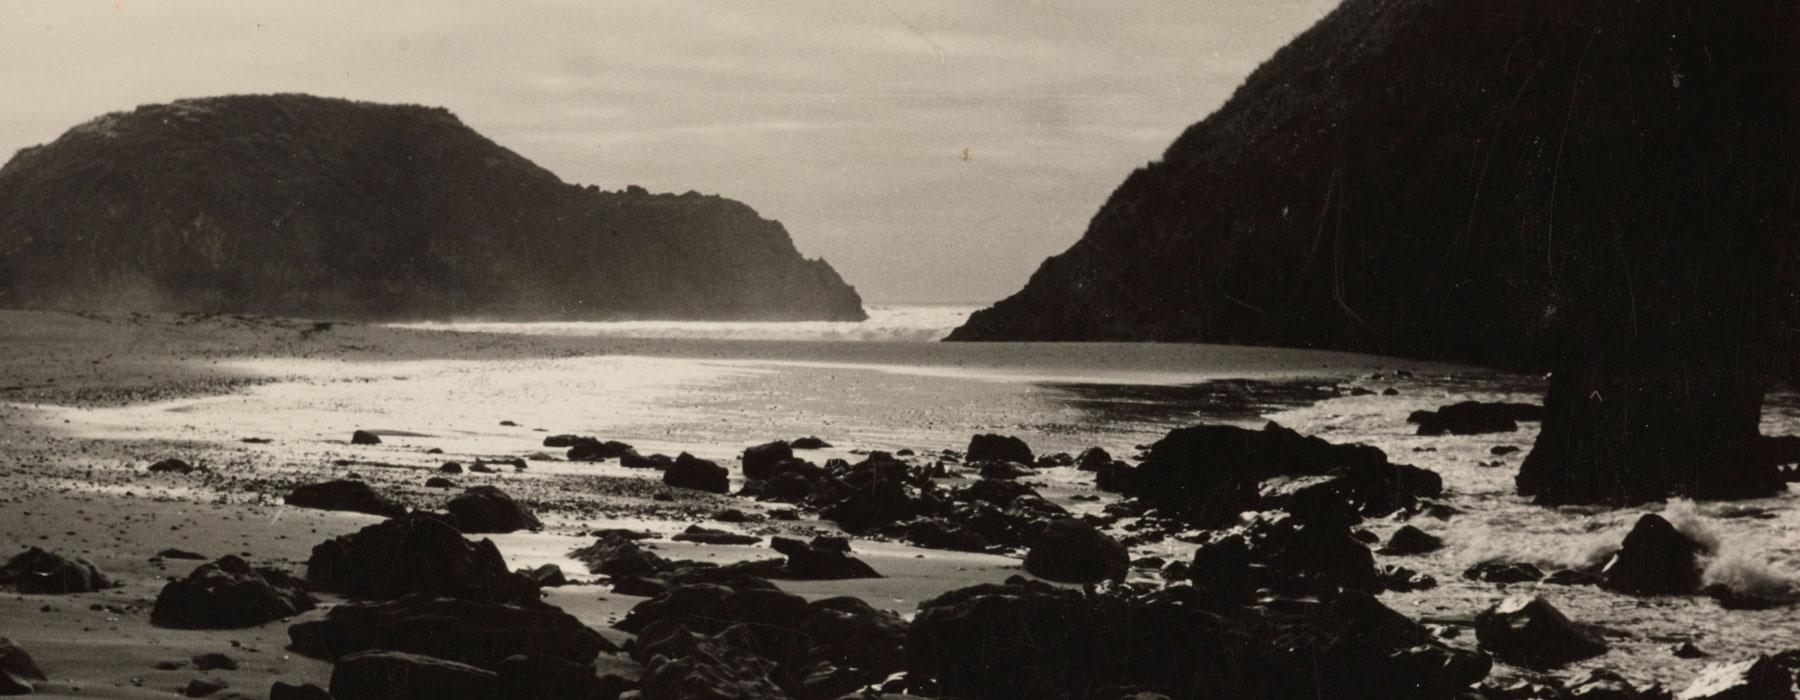 Black and white photograph of a beach and waves